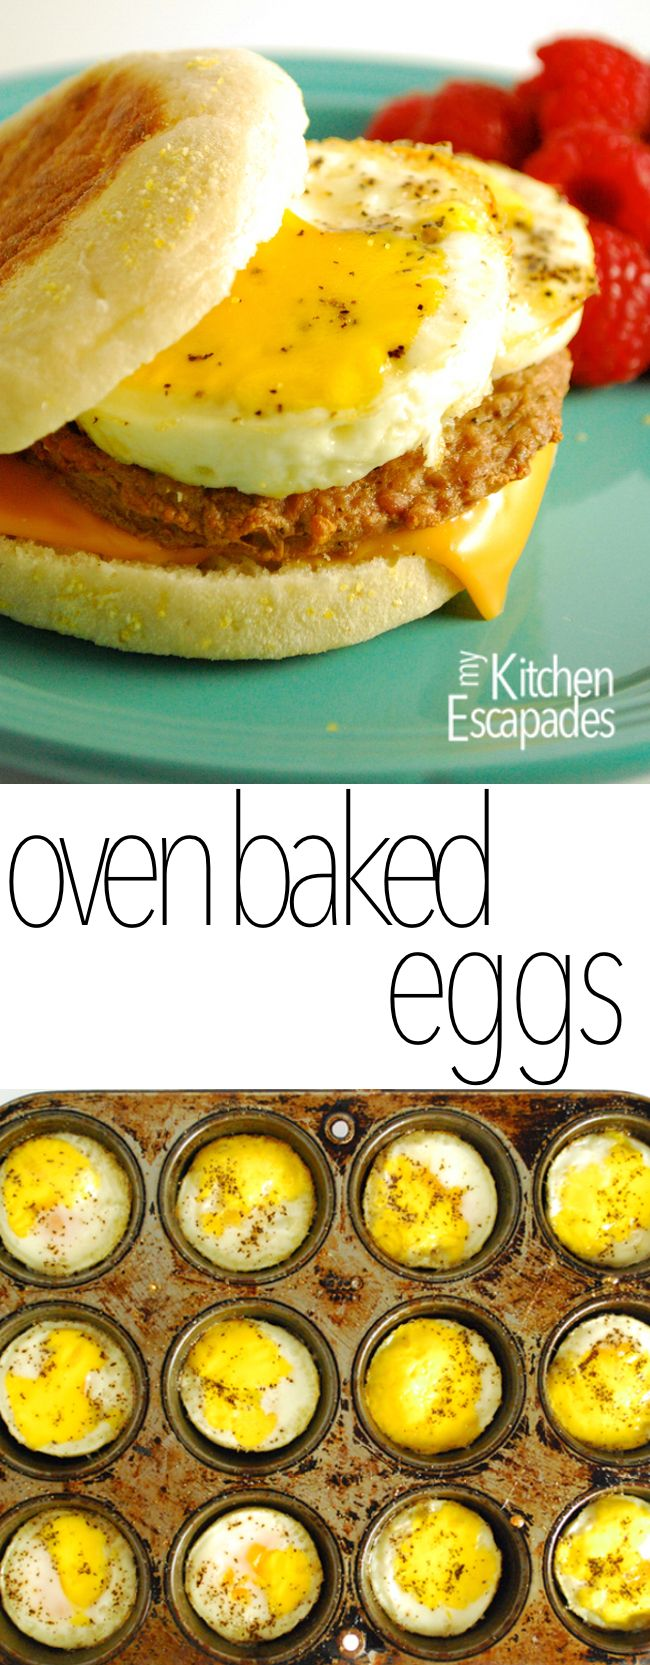 Breakfast Freezer Sandwiches (no muffin) made with oven baked eggs